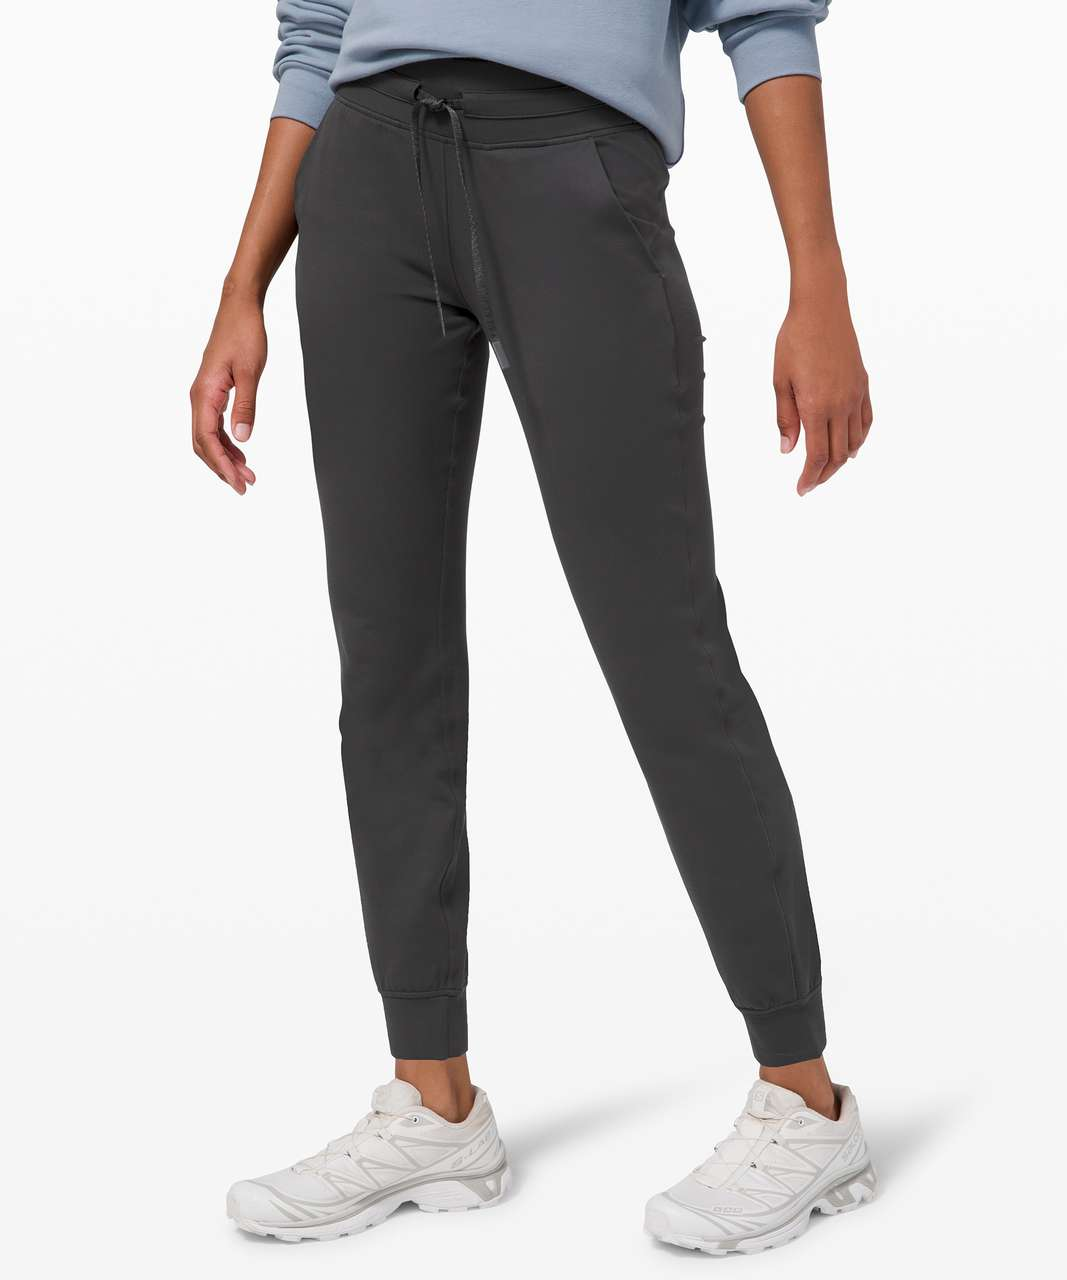 Lululemon Ready to Rulu 7/8 Jogger - Graphite Grey